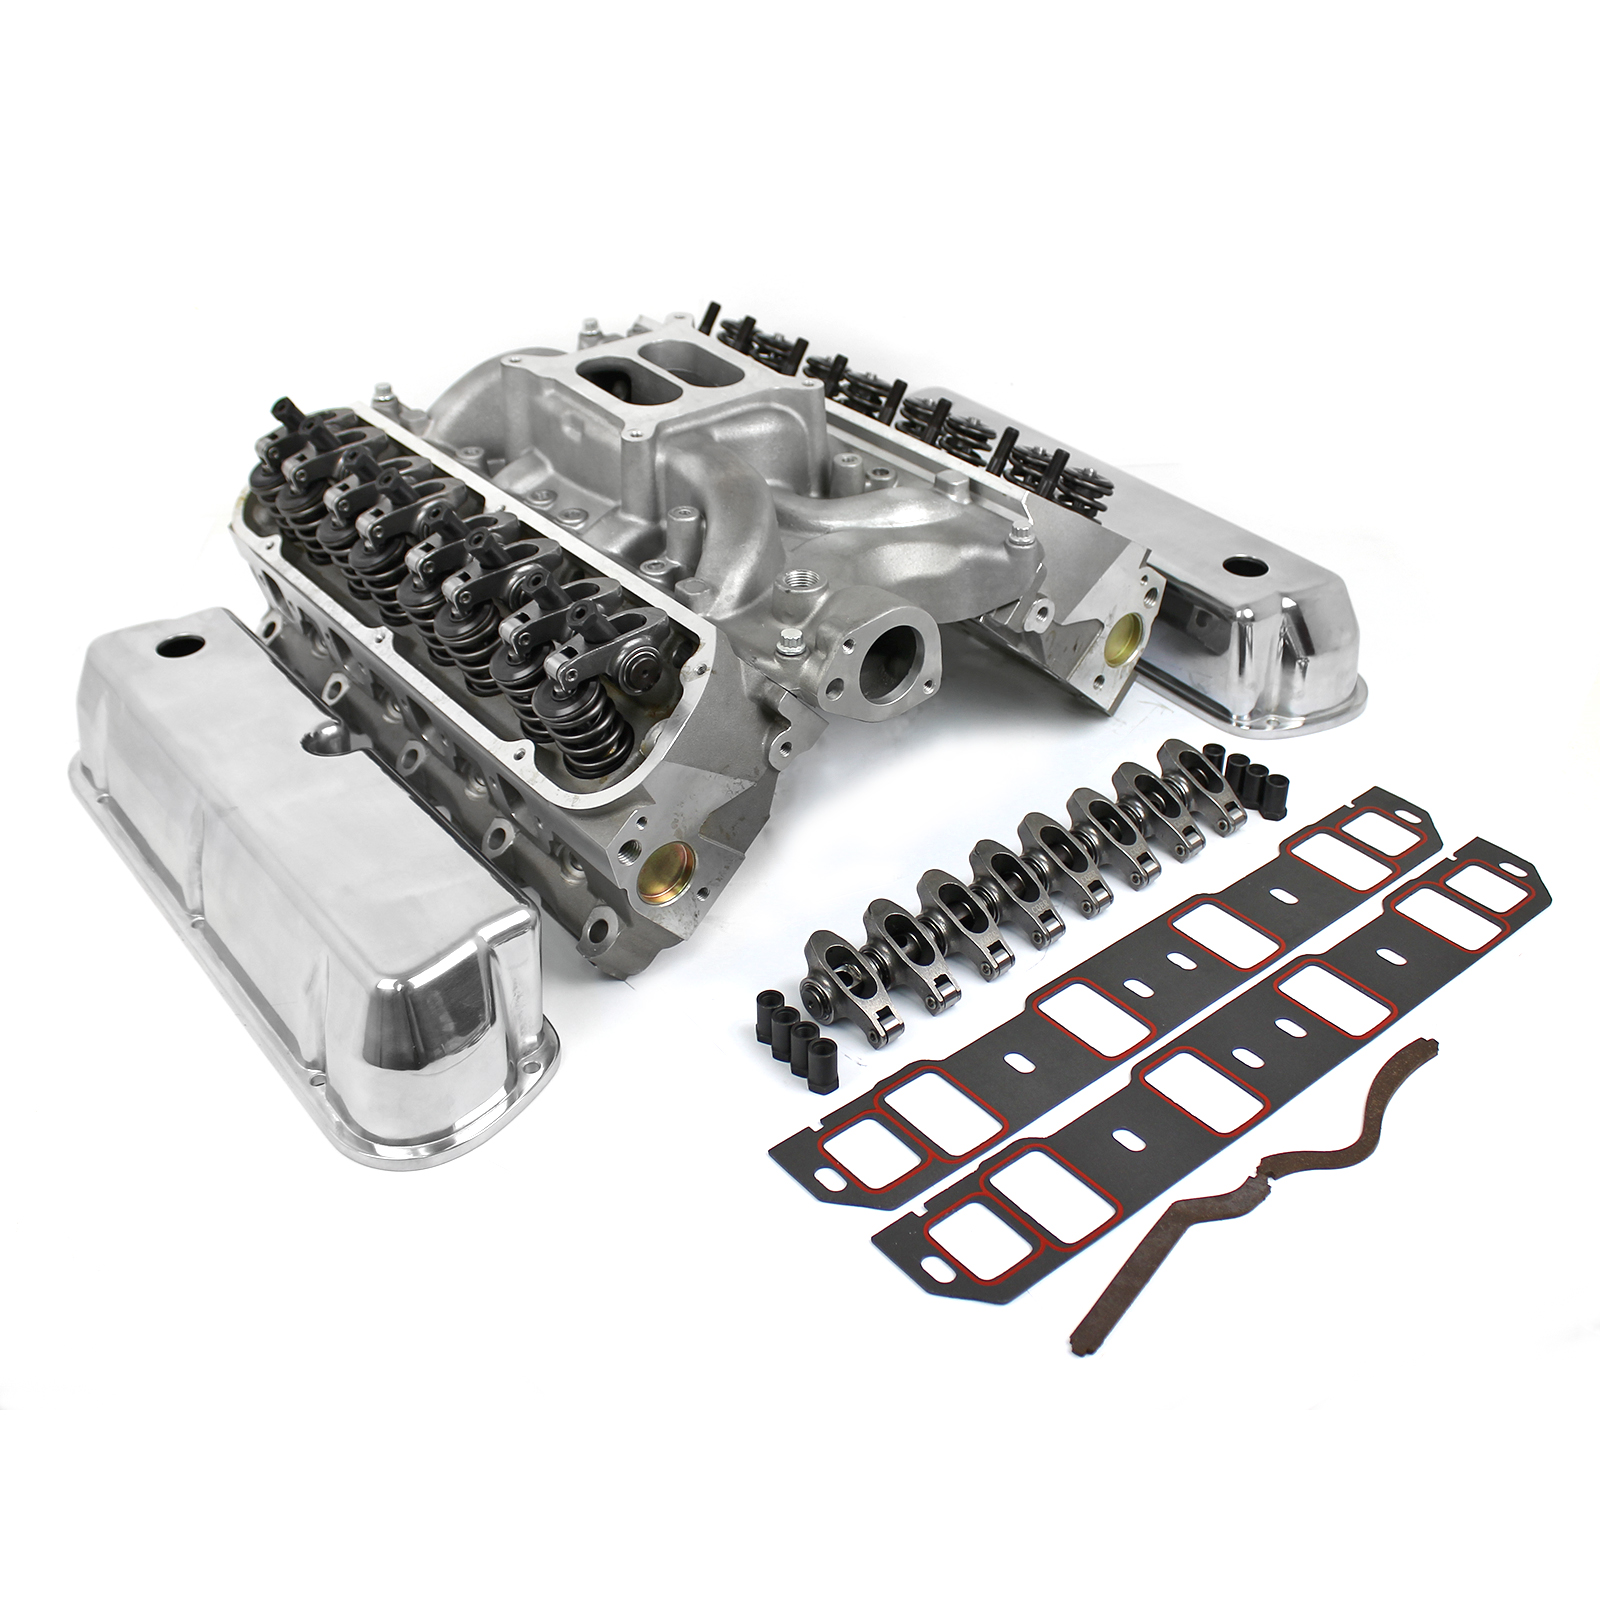 Ford SB 289 302 Windsor Hyd FT Cylinder Head Top End Engine Combo Kit